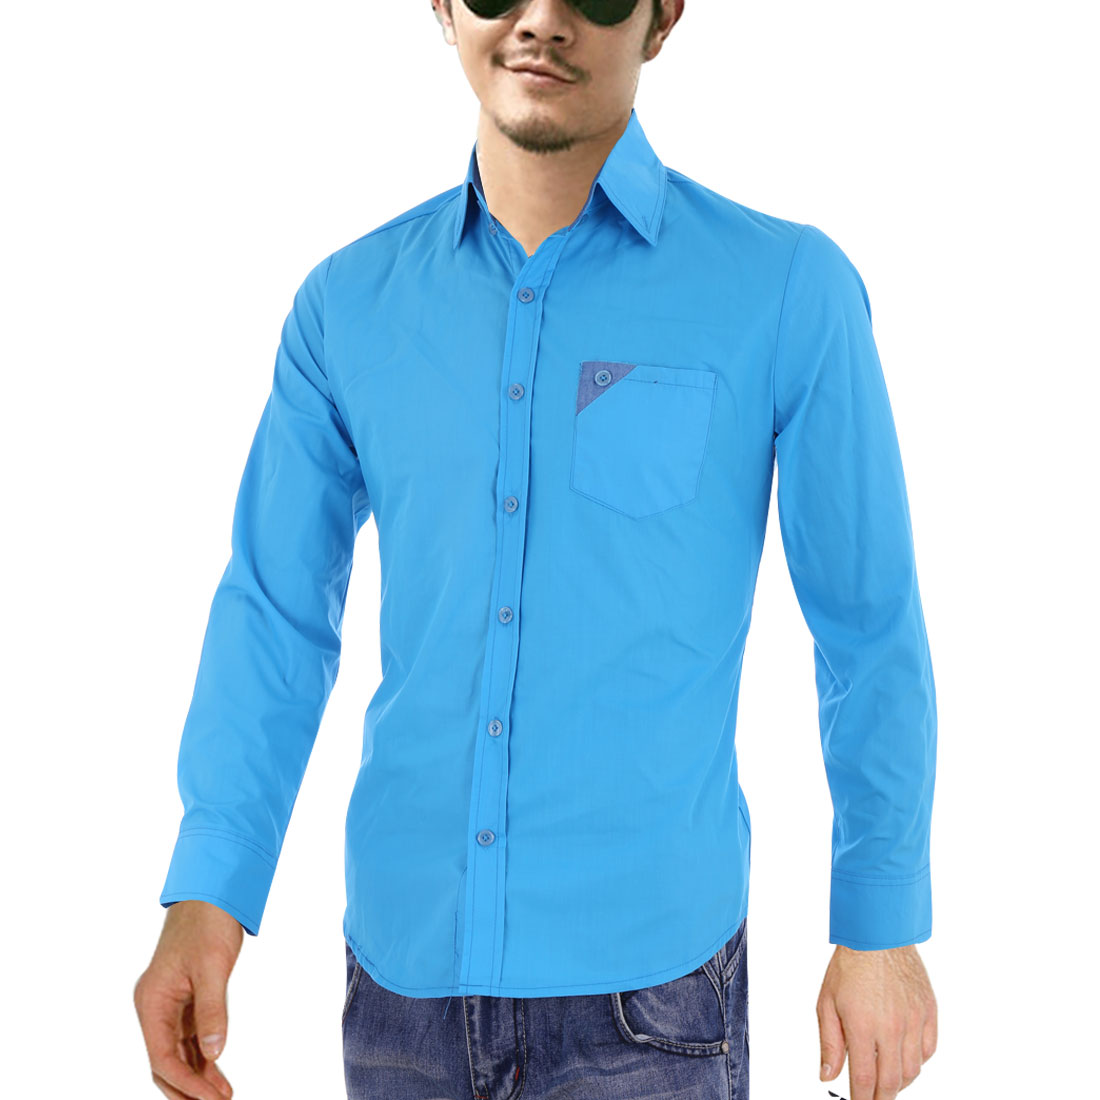 Men Long Sleeve Single Breasted Pocket Shirt Turquoise M